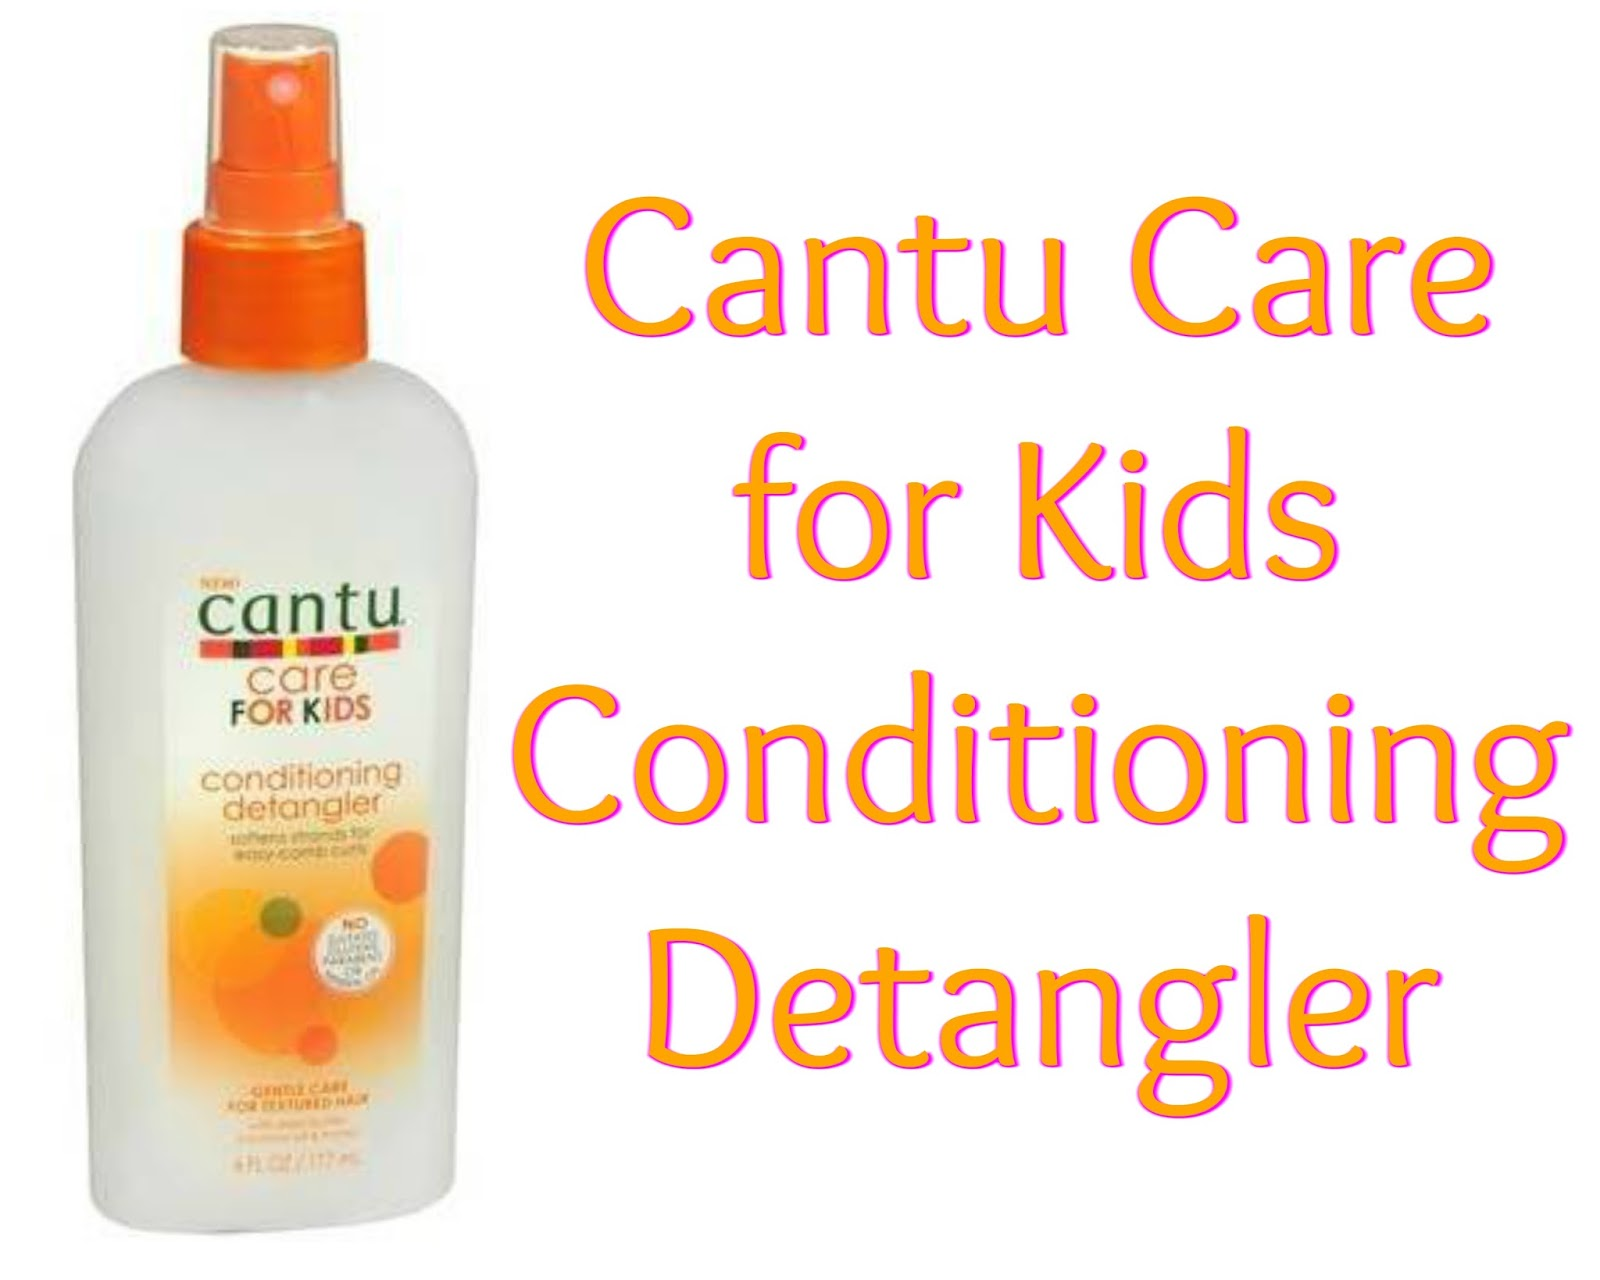 Click here to buy Cantu Care For Kids Conditioning Detangler to bust those tangles!